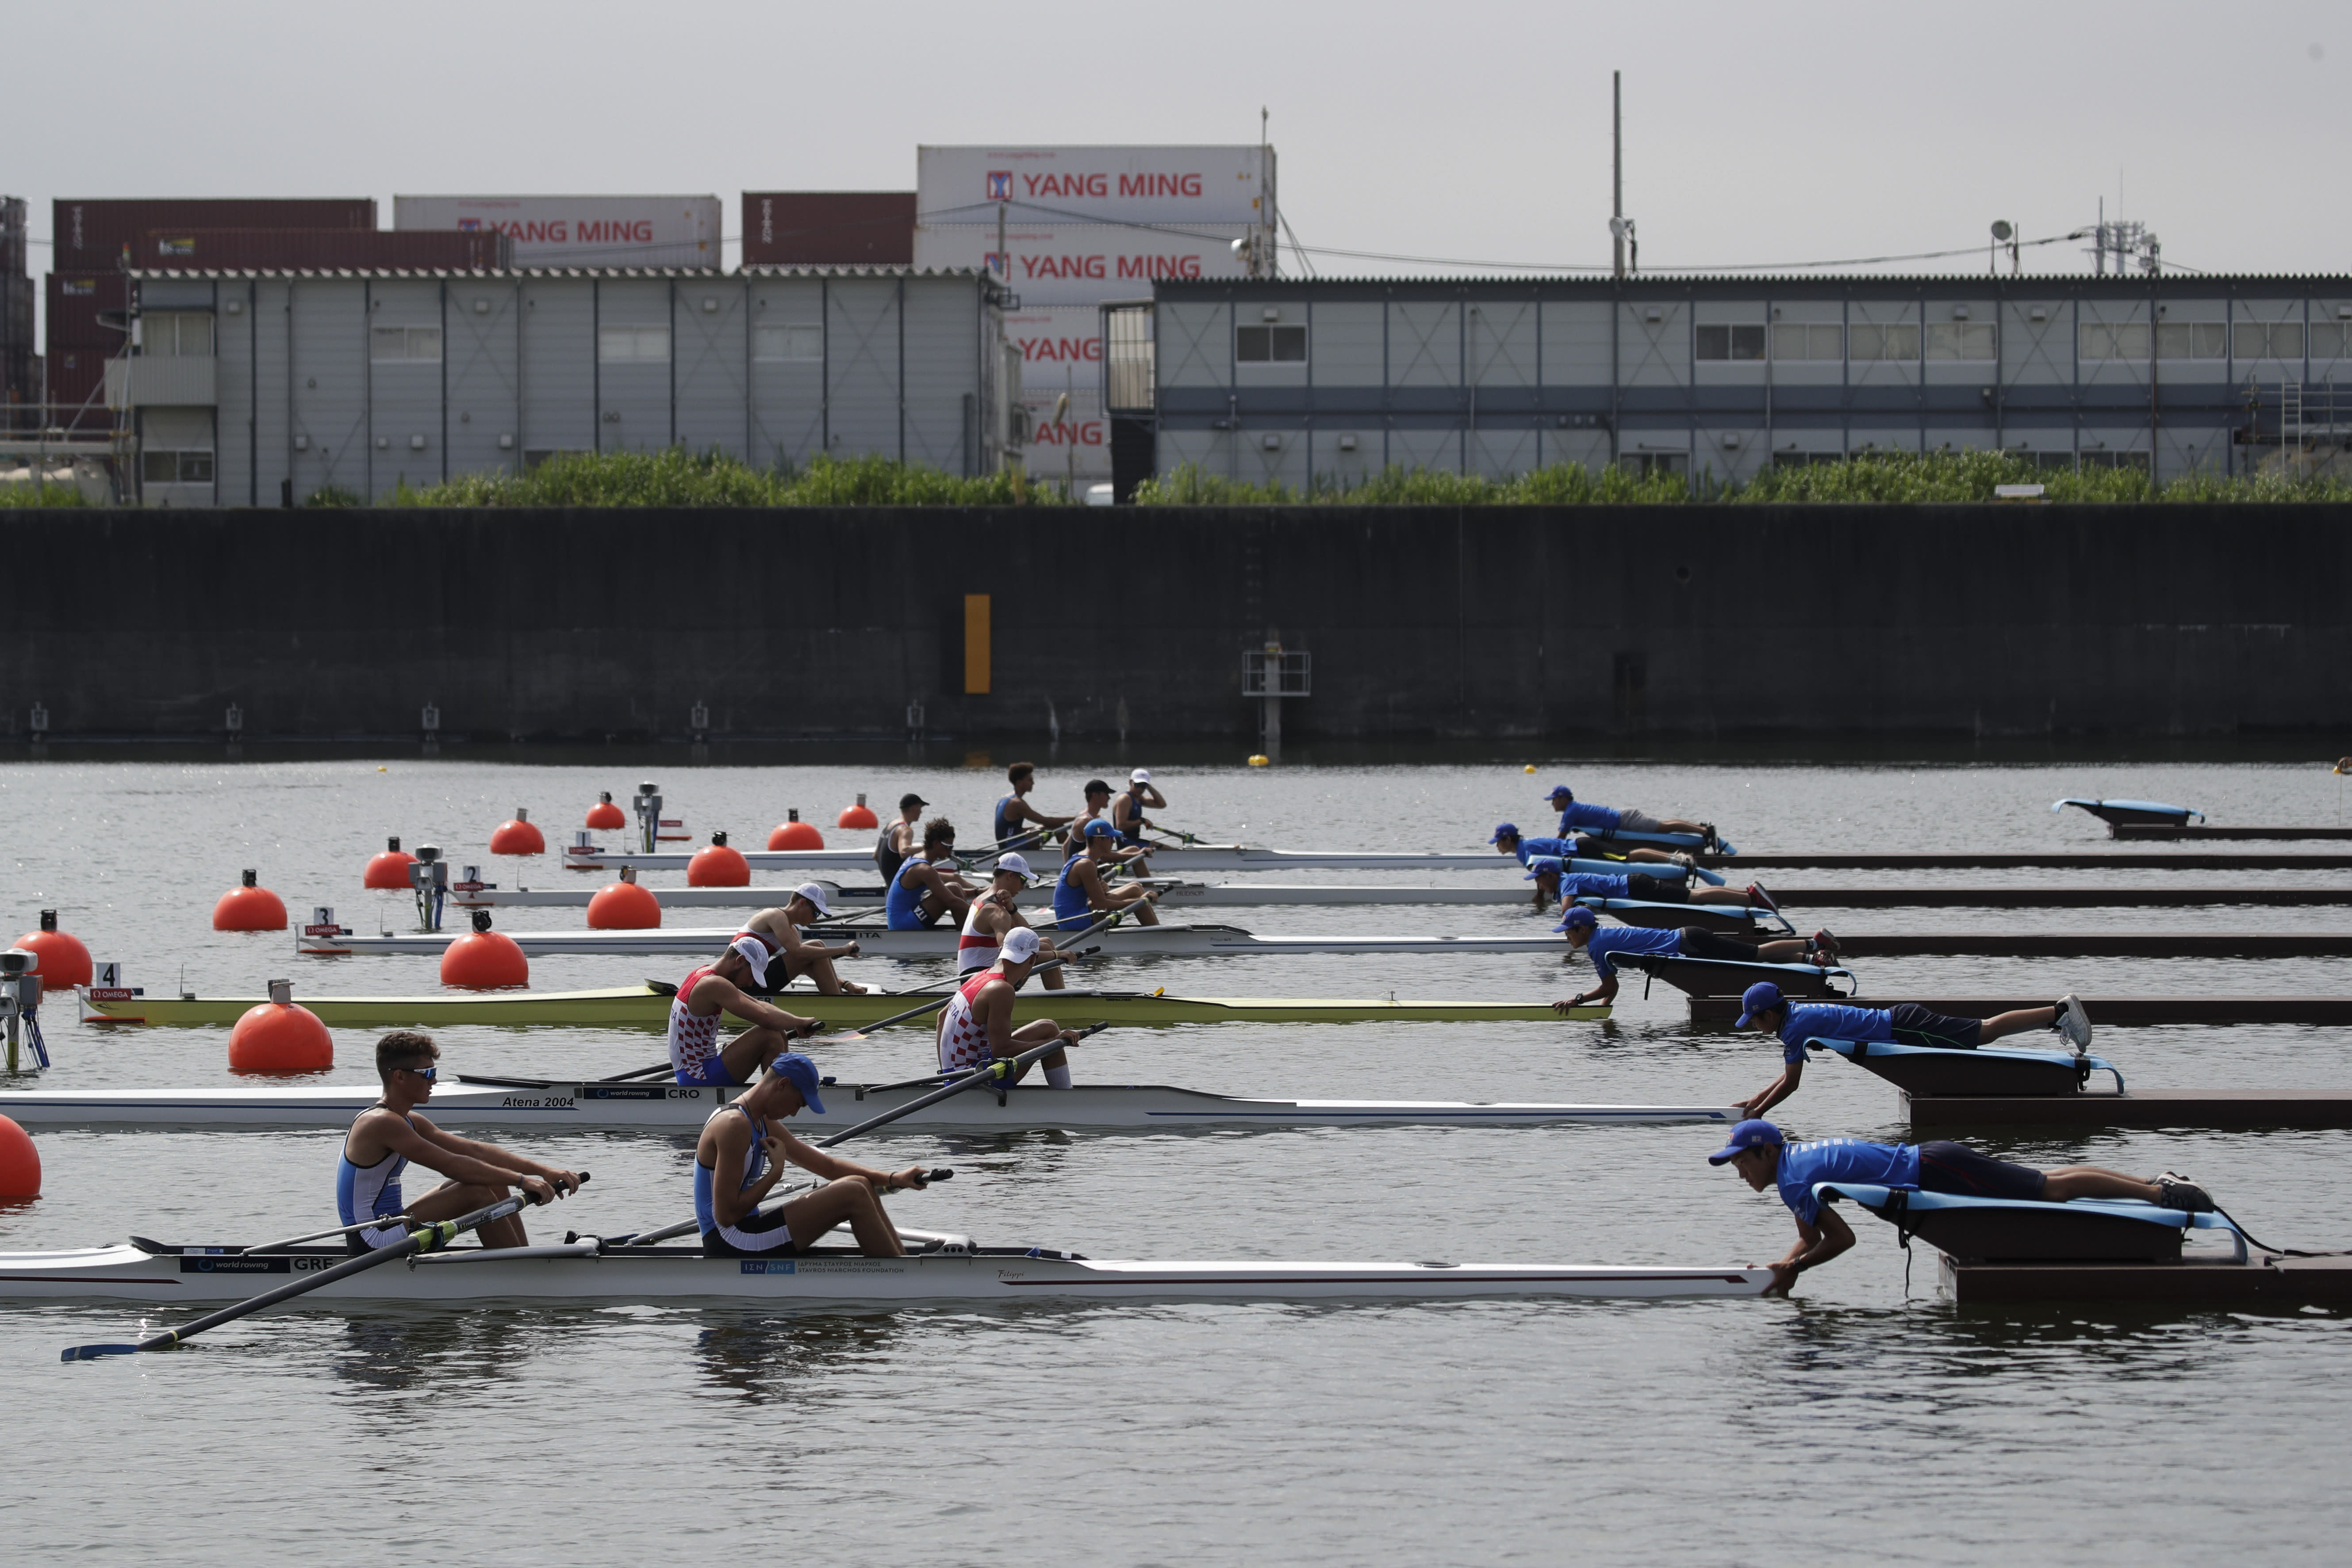 Rowers were left struggling against the soaring temperatures at the 2019 World Rowing Junior Championships. (AP Photo/Jae C. Hong)